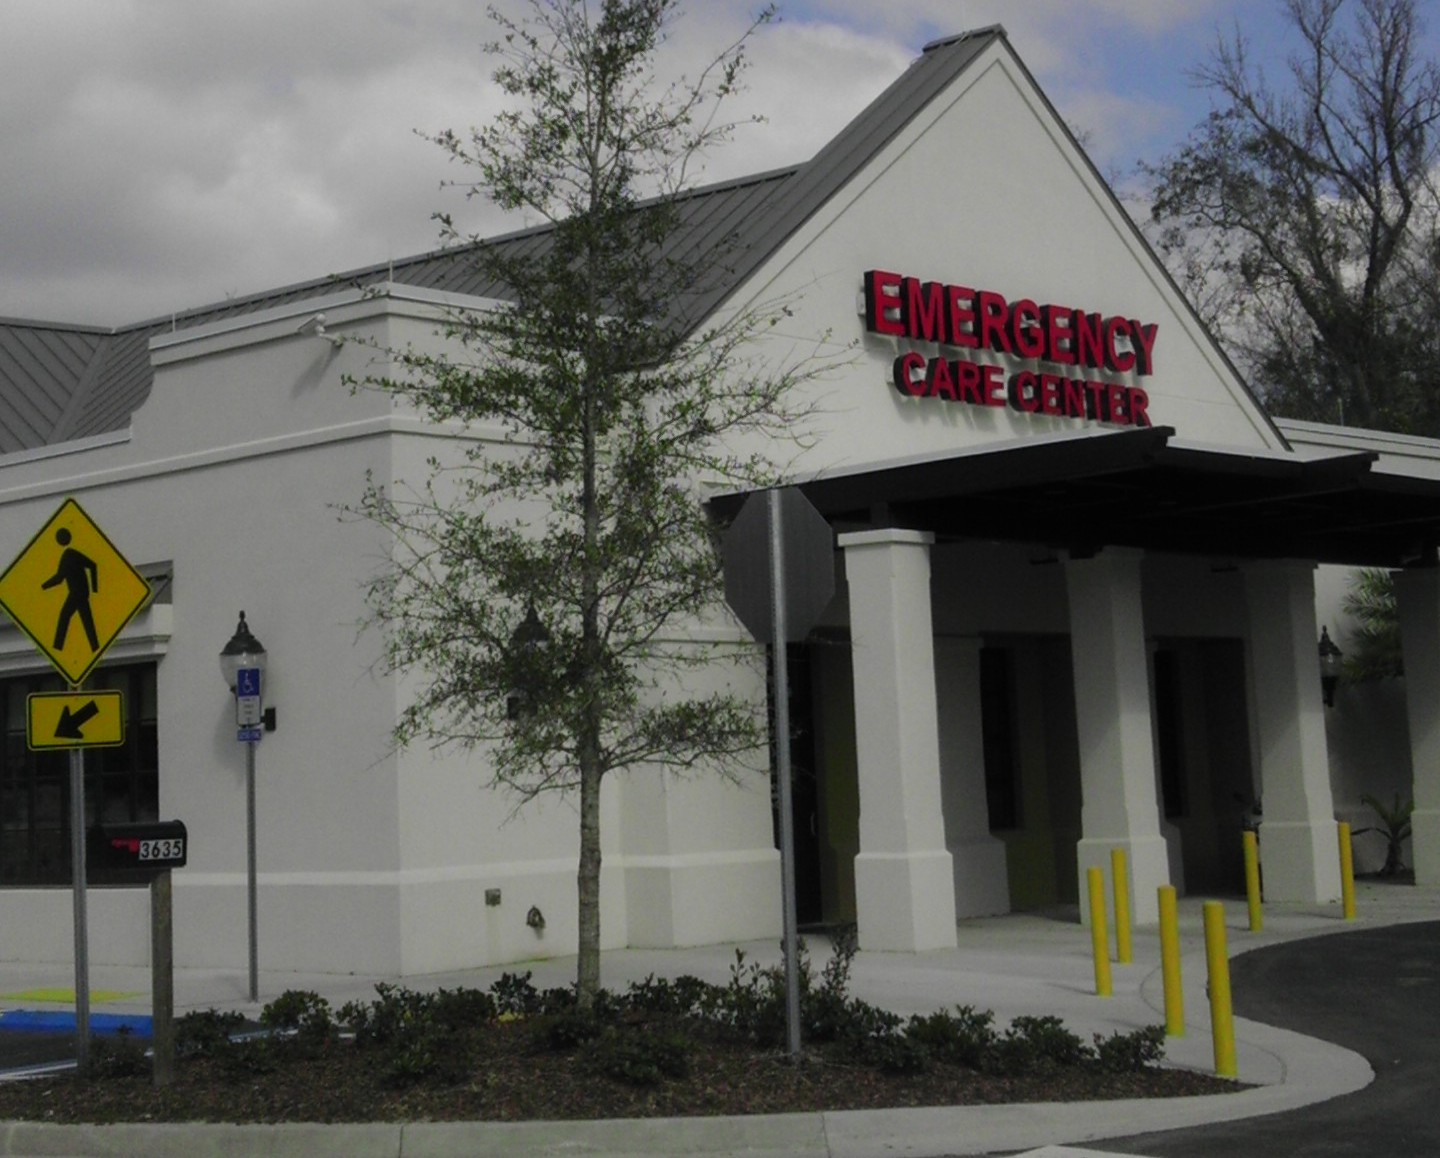 Memorial Emergency Care Center at Julington Creek